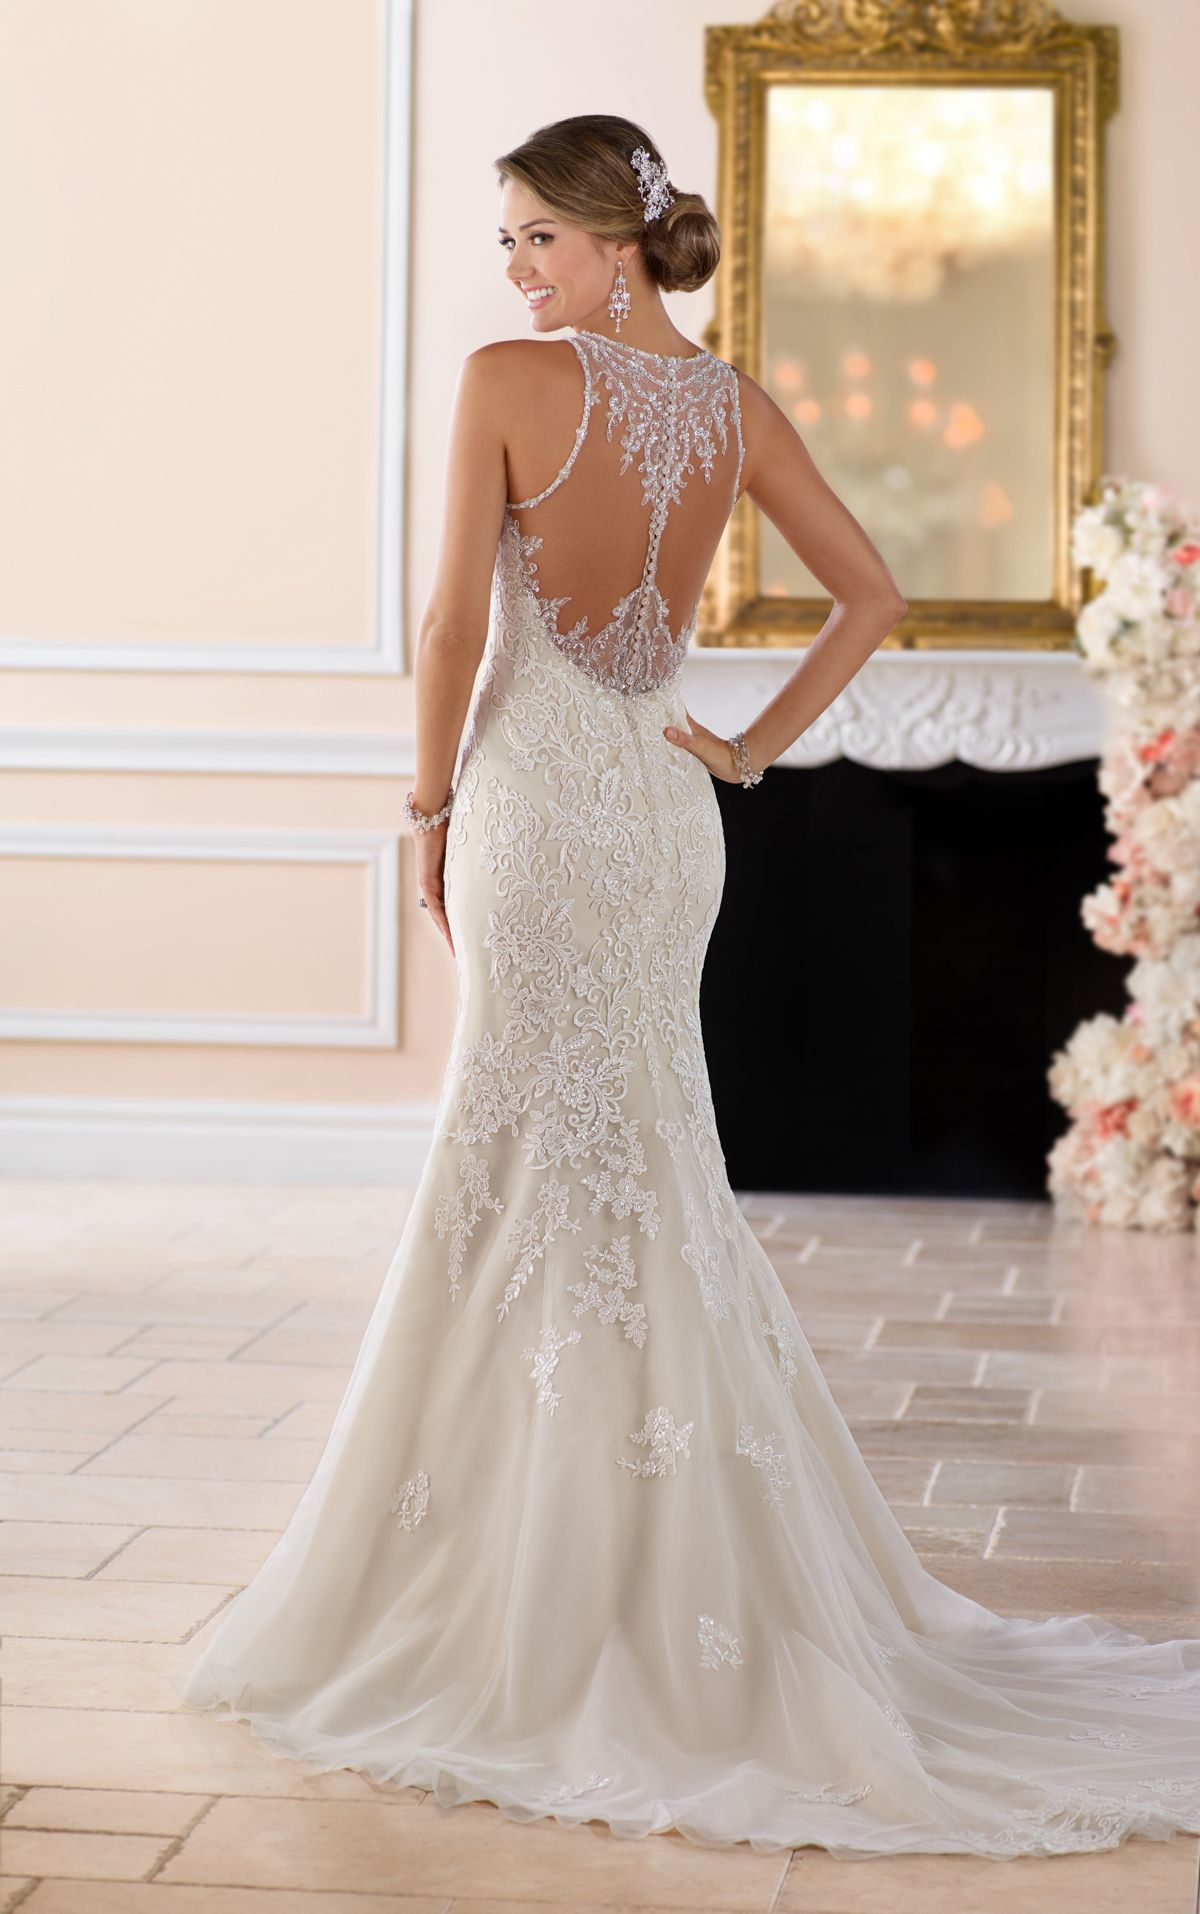 Elegant High Neck Wedding Dress With Lace Beading Weddddding